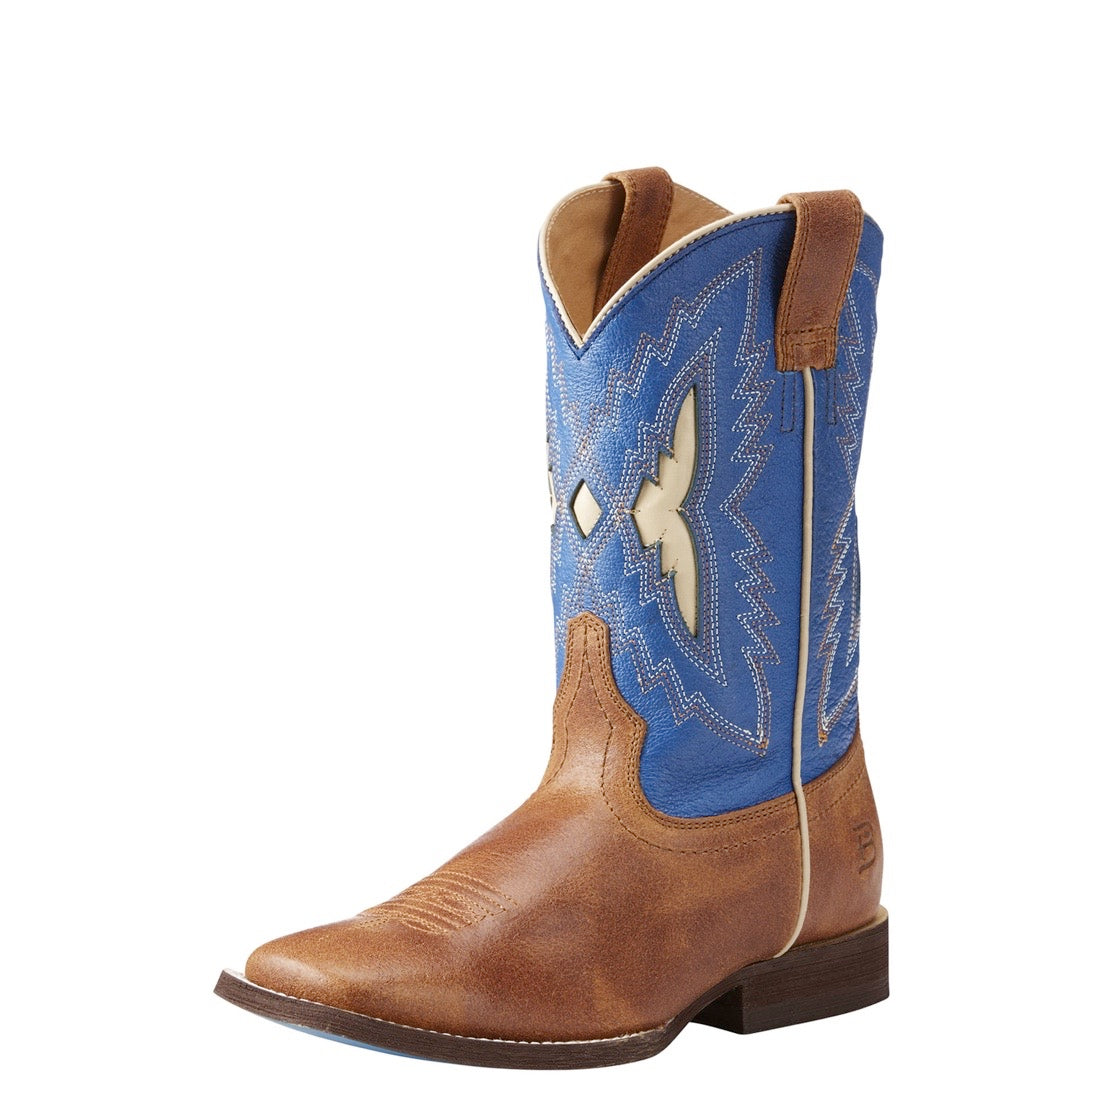 Ariat Kids Relentless Top Notch Butterscotch/Milky Blue